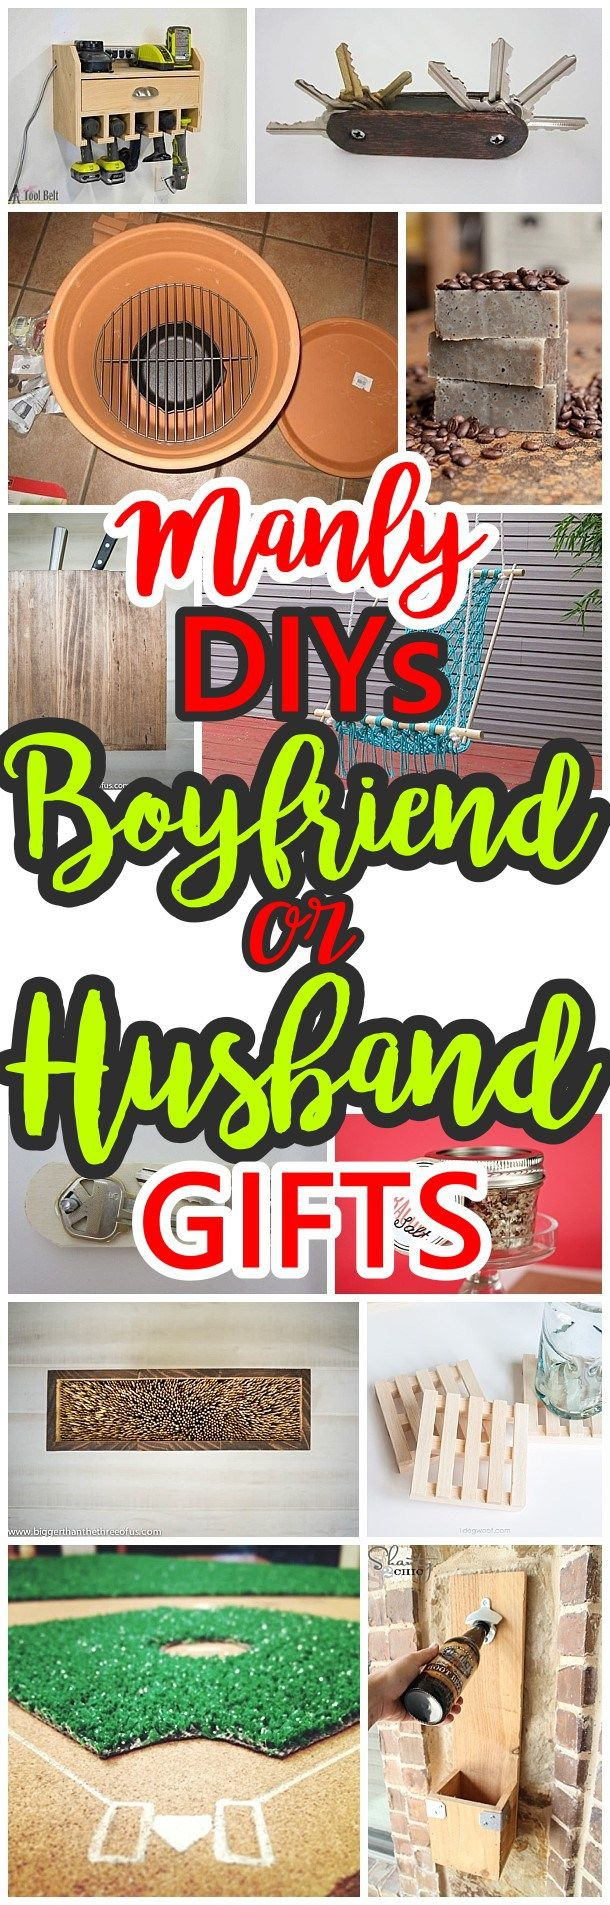 Manly do it yourself boyfriend and husband gift ideas masculine do it yourself manly gift ideas for boyfriends husbands sons brothers uncles solutioingenieria